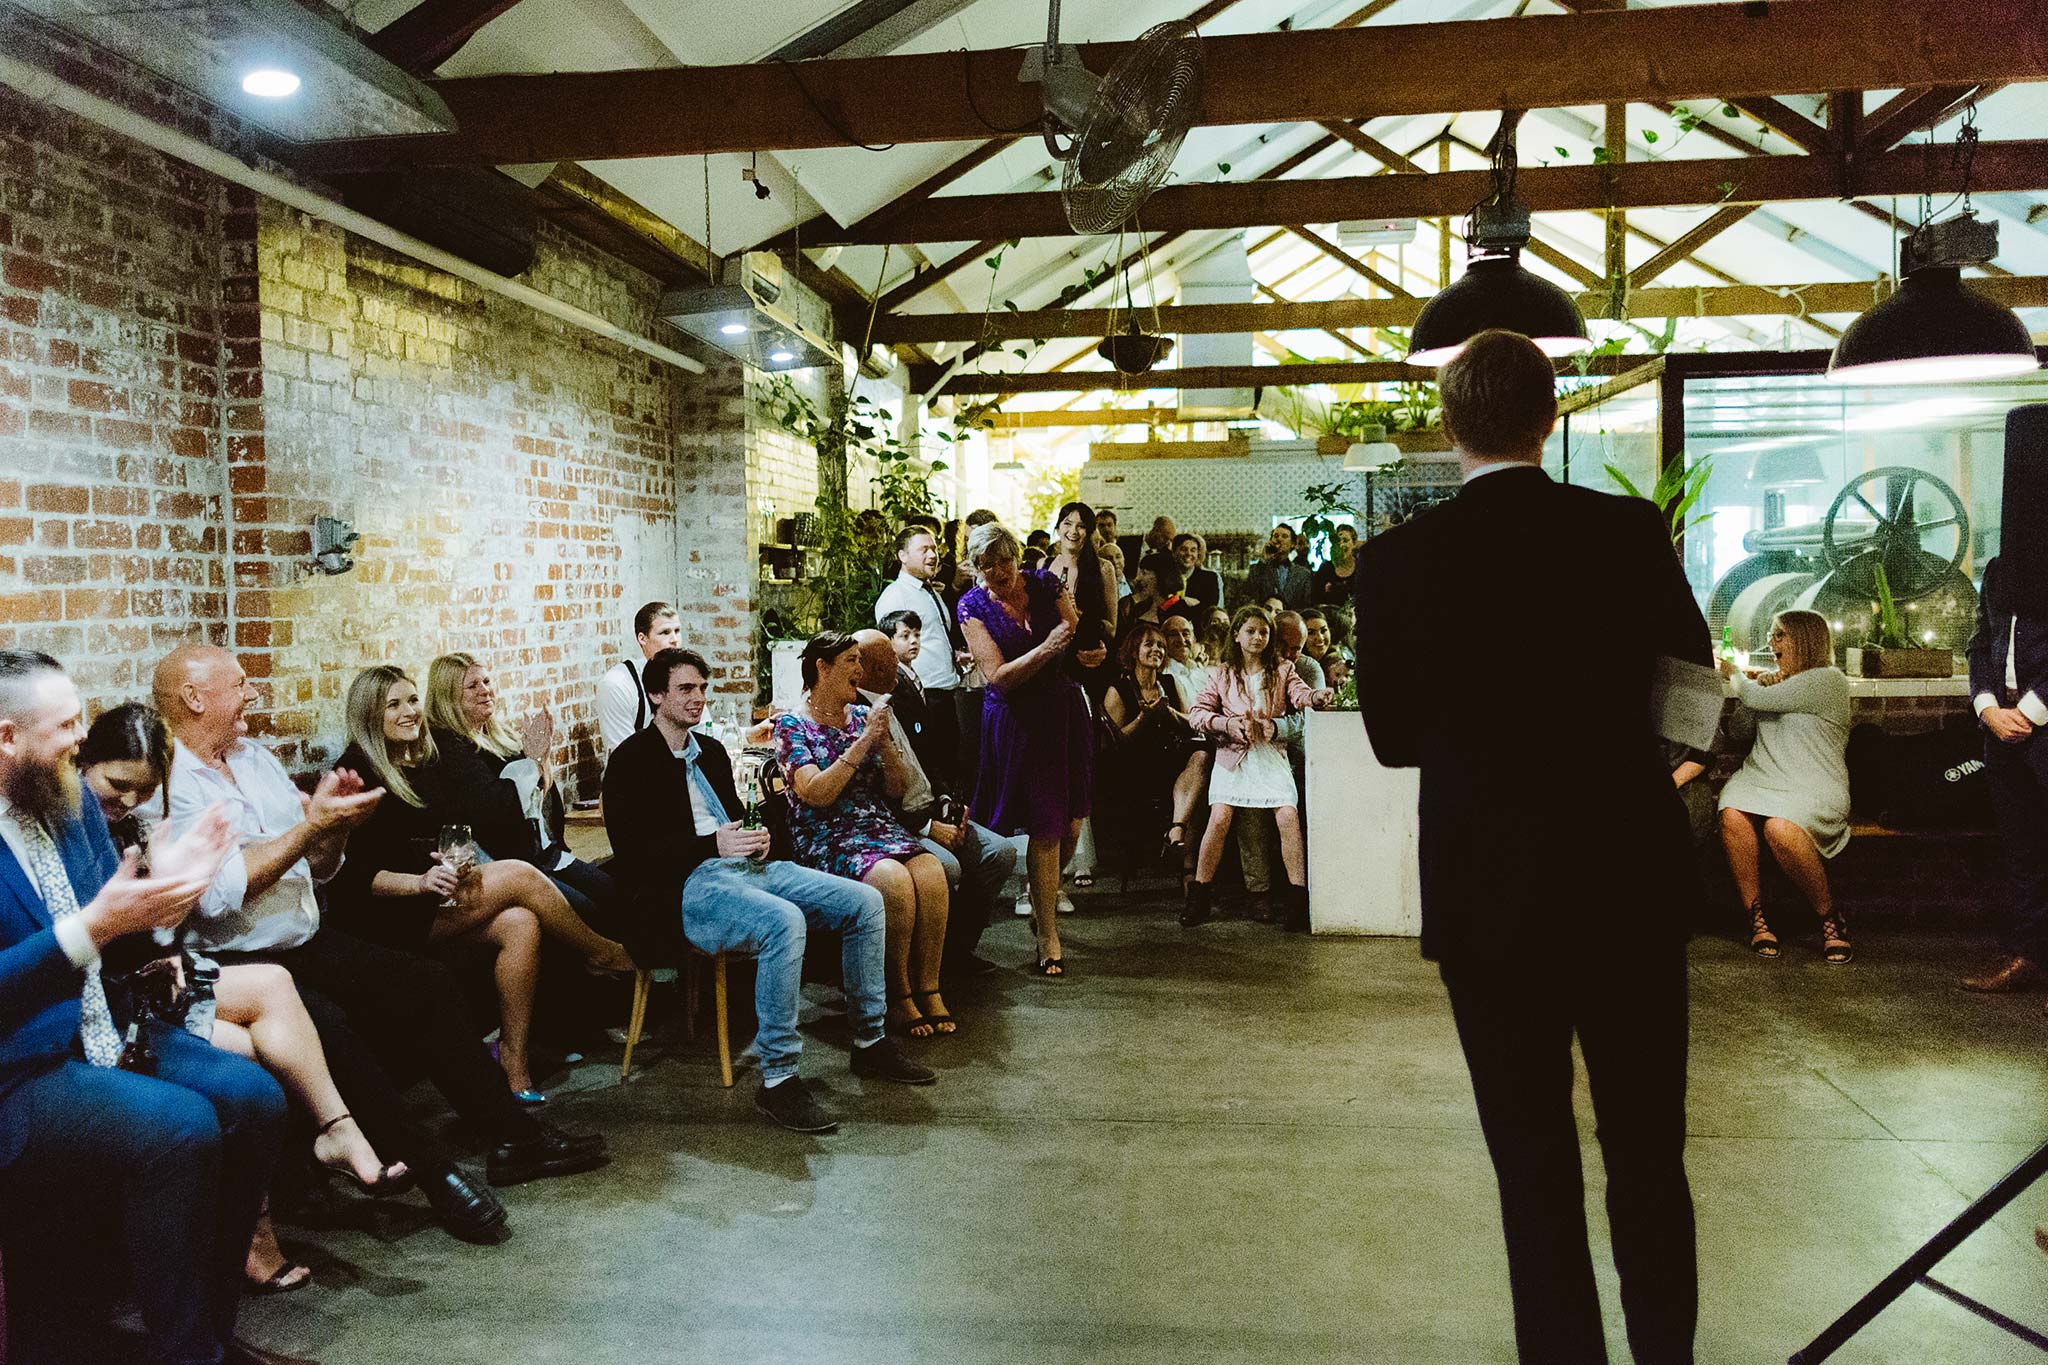 Melbourne-North-Carlton-East-Elevation-Surprise-Winter-warehouse-Wedding-photographer-announcement